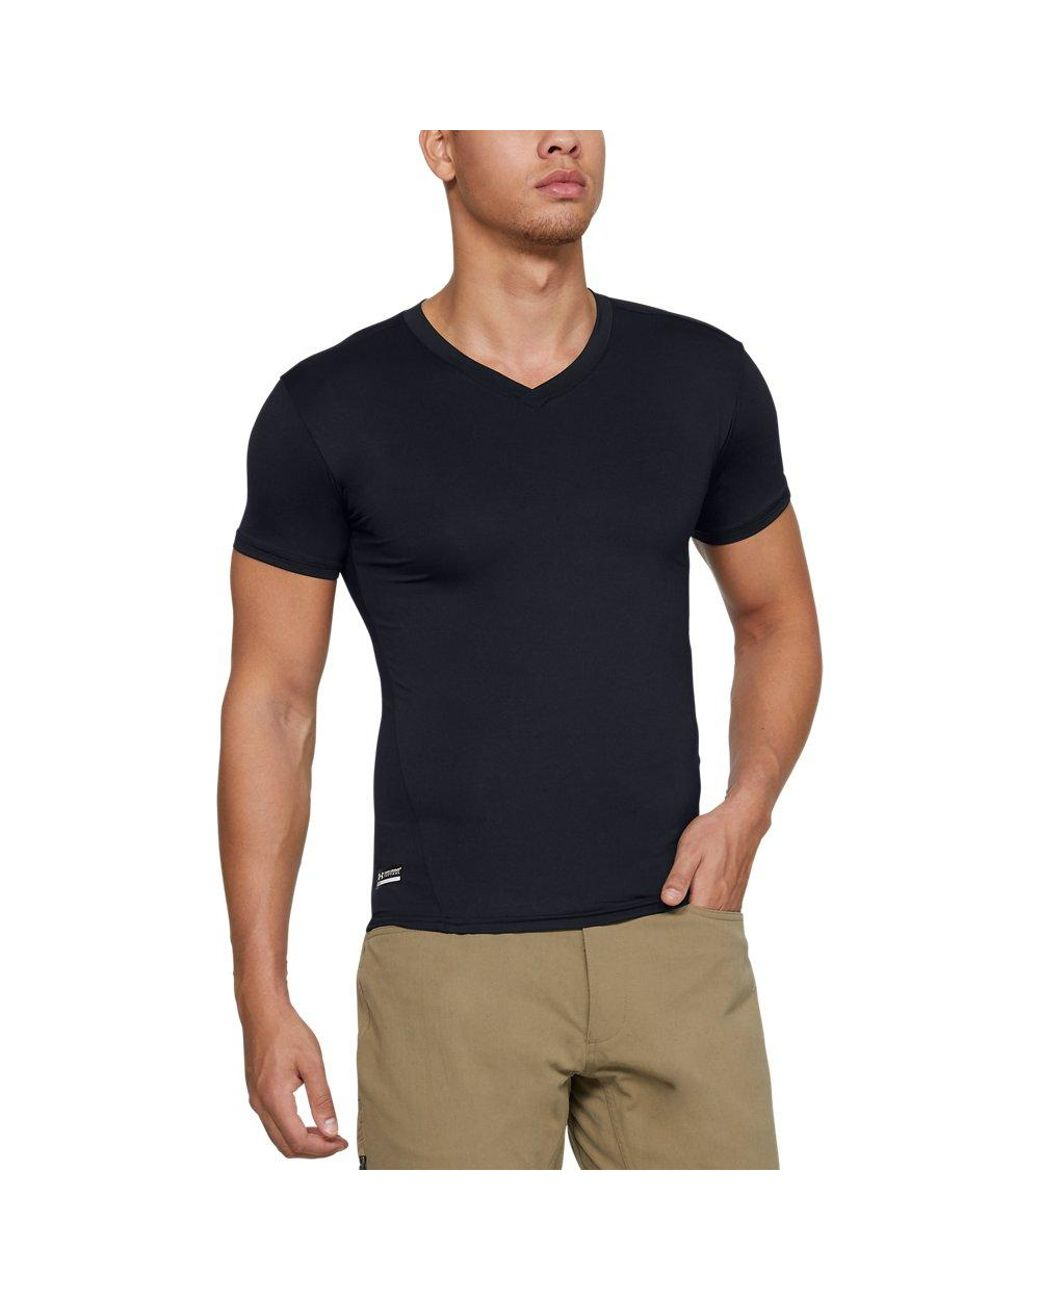 ca61e885060a Under Armour Men's Tactical Heatgear Compression V-neck T-shirt in Black  for Men - Lyst